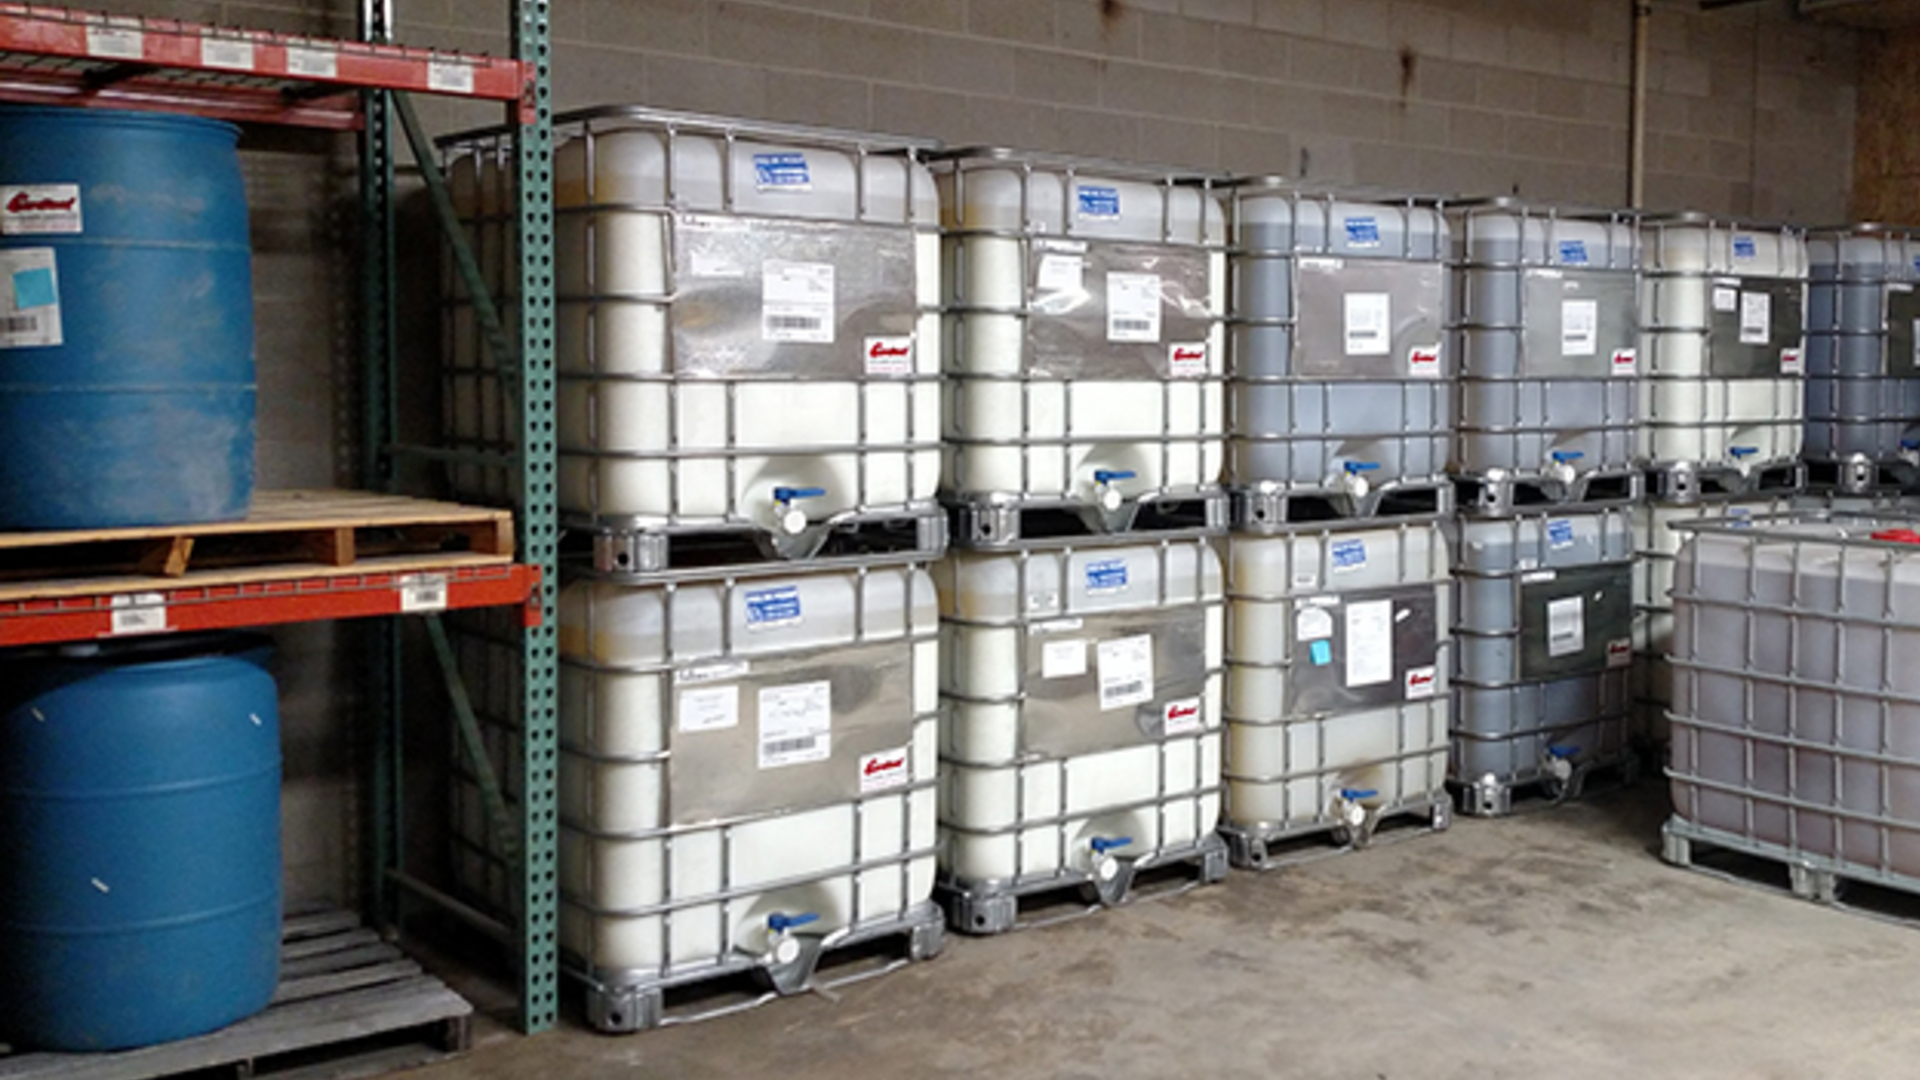 A picture showing liquid polymer totes stacked on top of each other and liquid polymer drums on shelving in a warehouse.